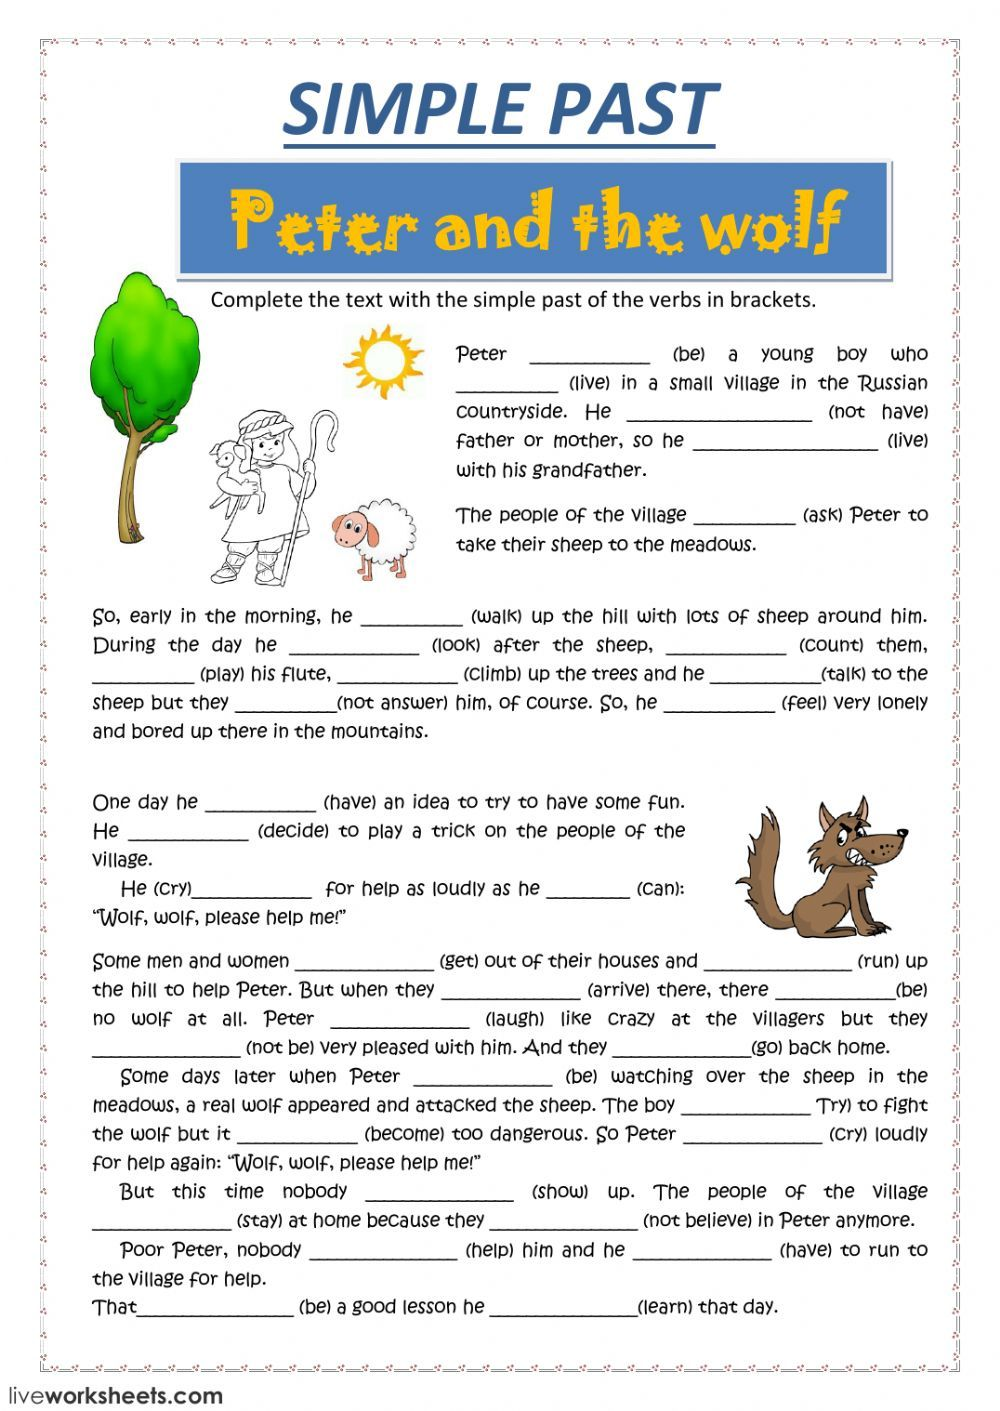 Past Simple Interactive And Downloadable Worksheet You Can Do The